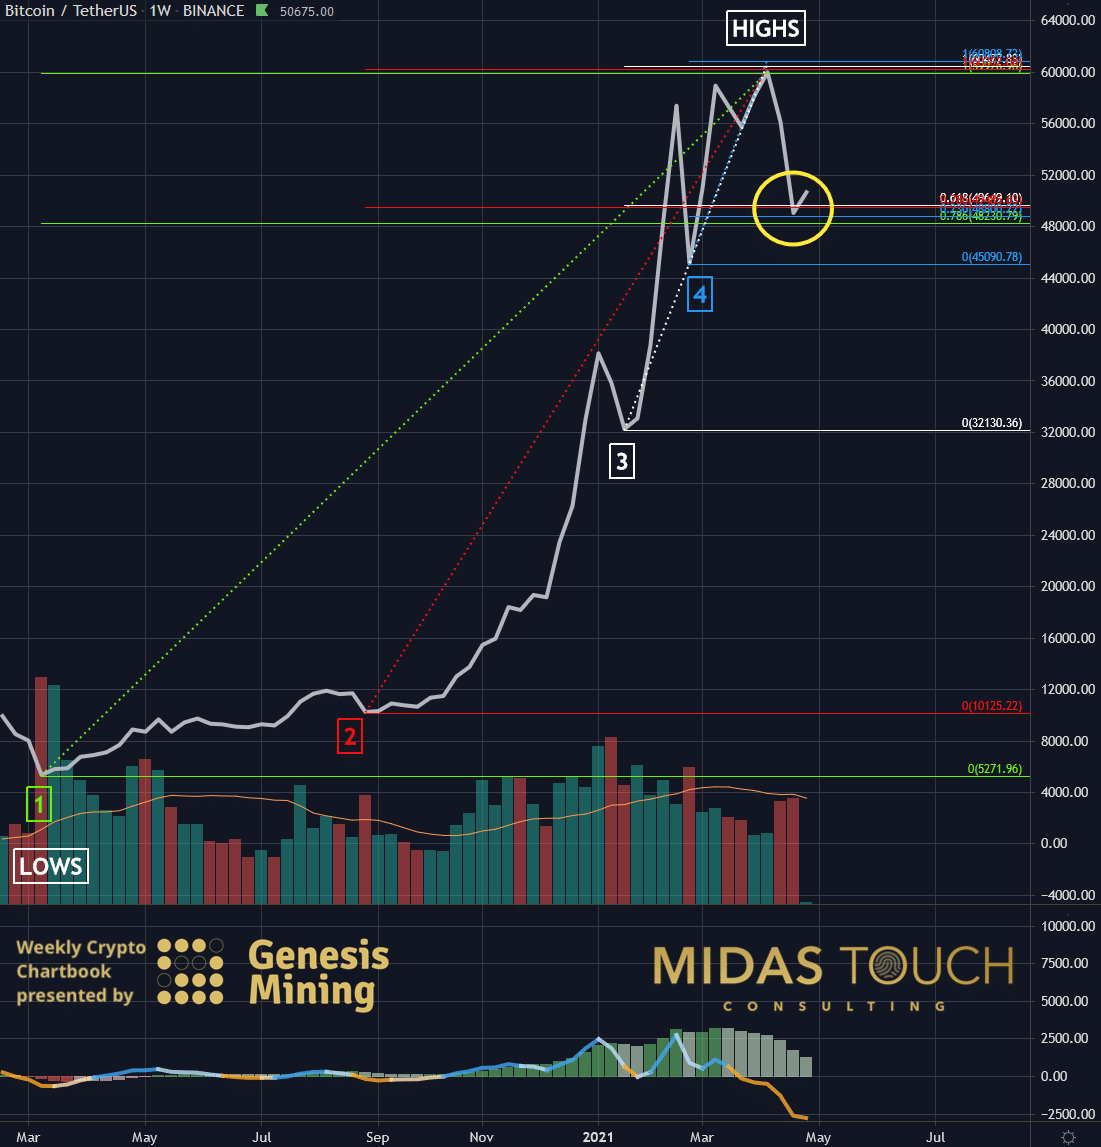 Bitcoin in US Dollar, weekly chart as of April 26th, 2021.